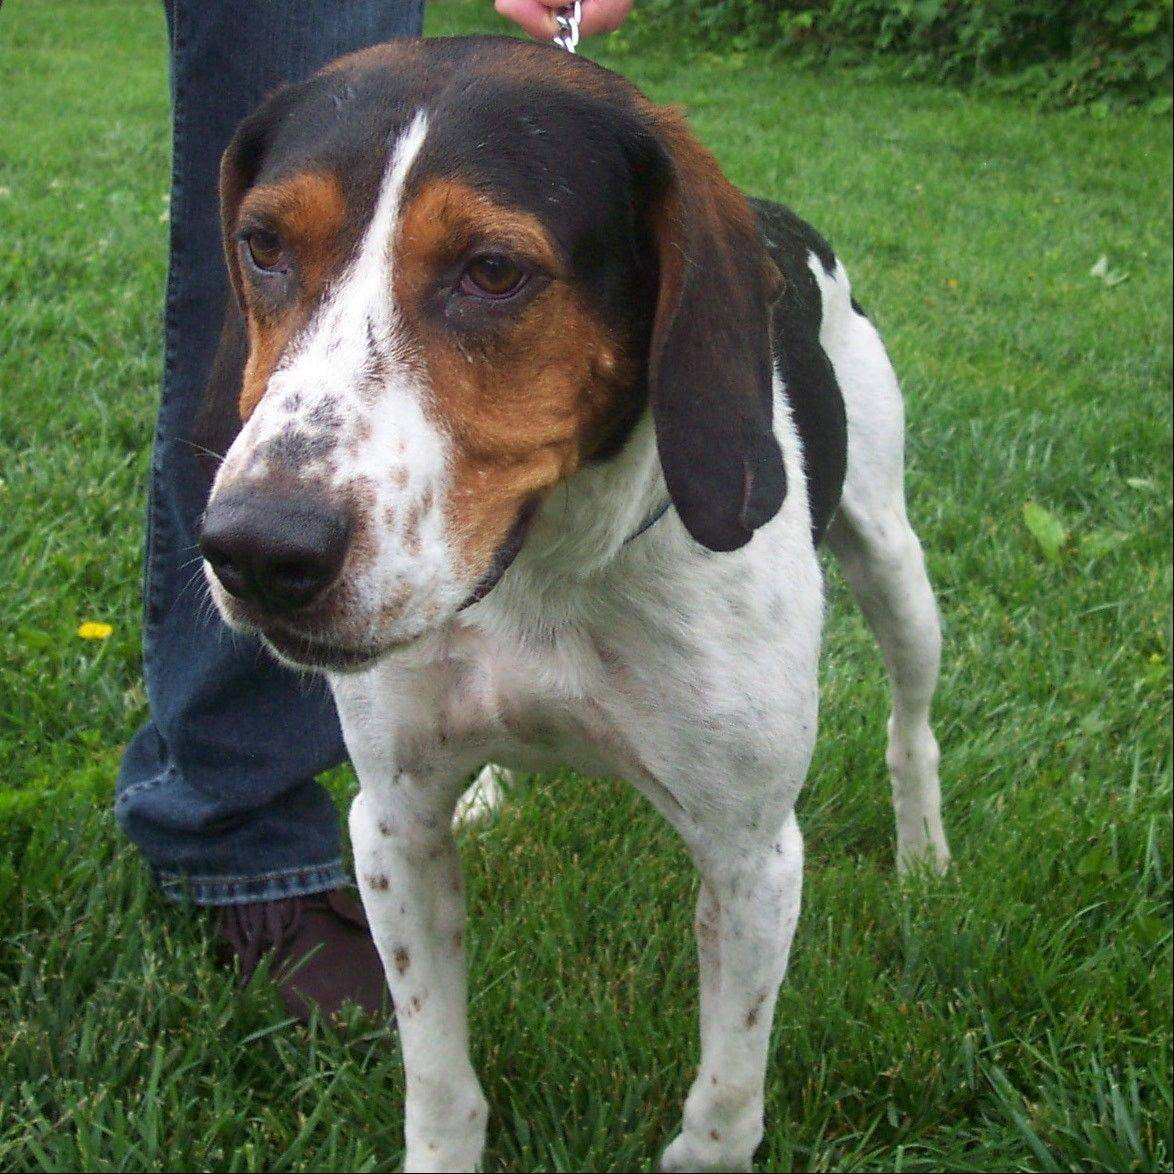 Boomer is a male hound mix who is about 1 year old and weighs 49 pounds.